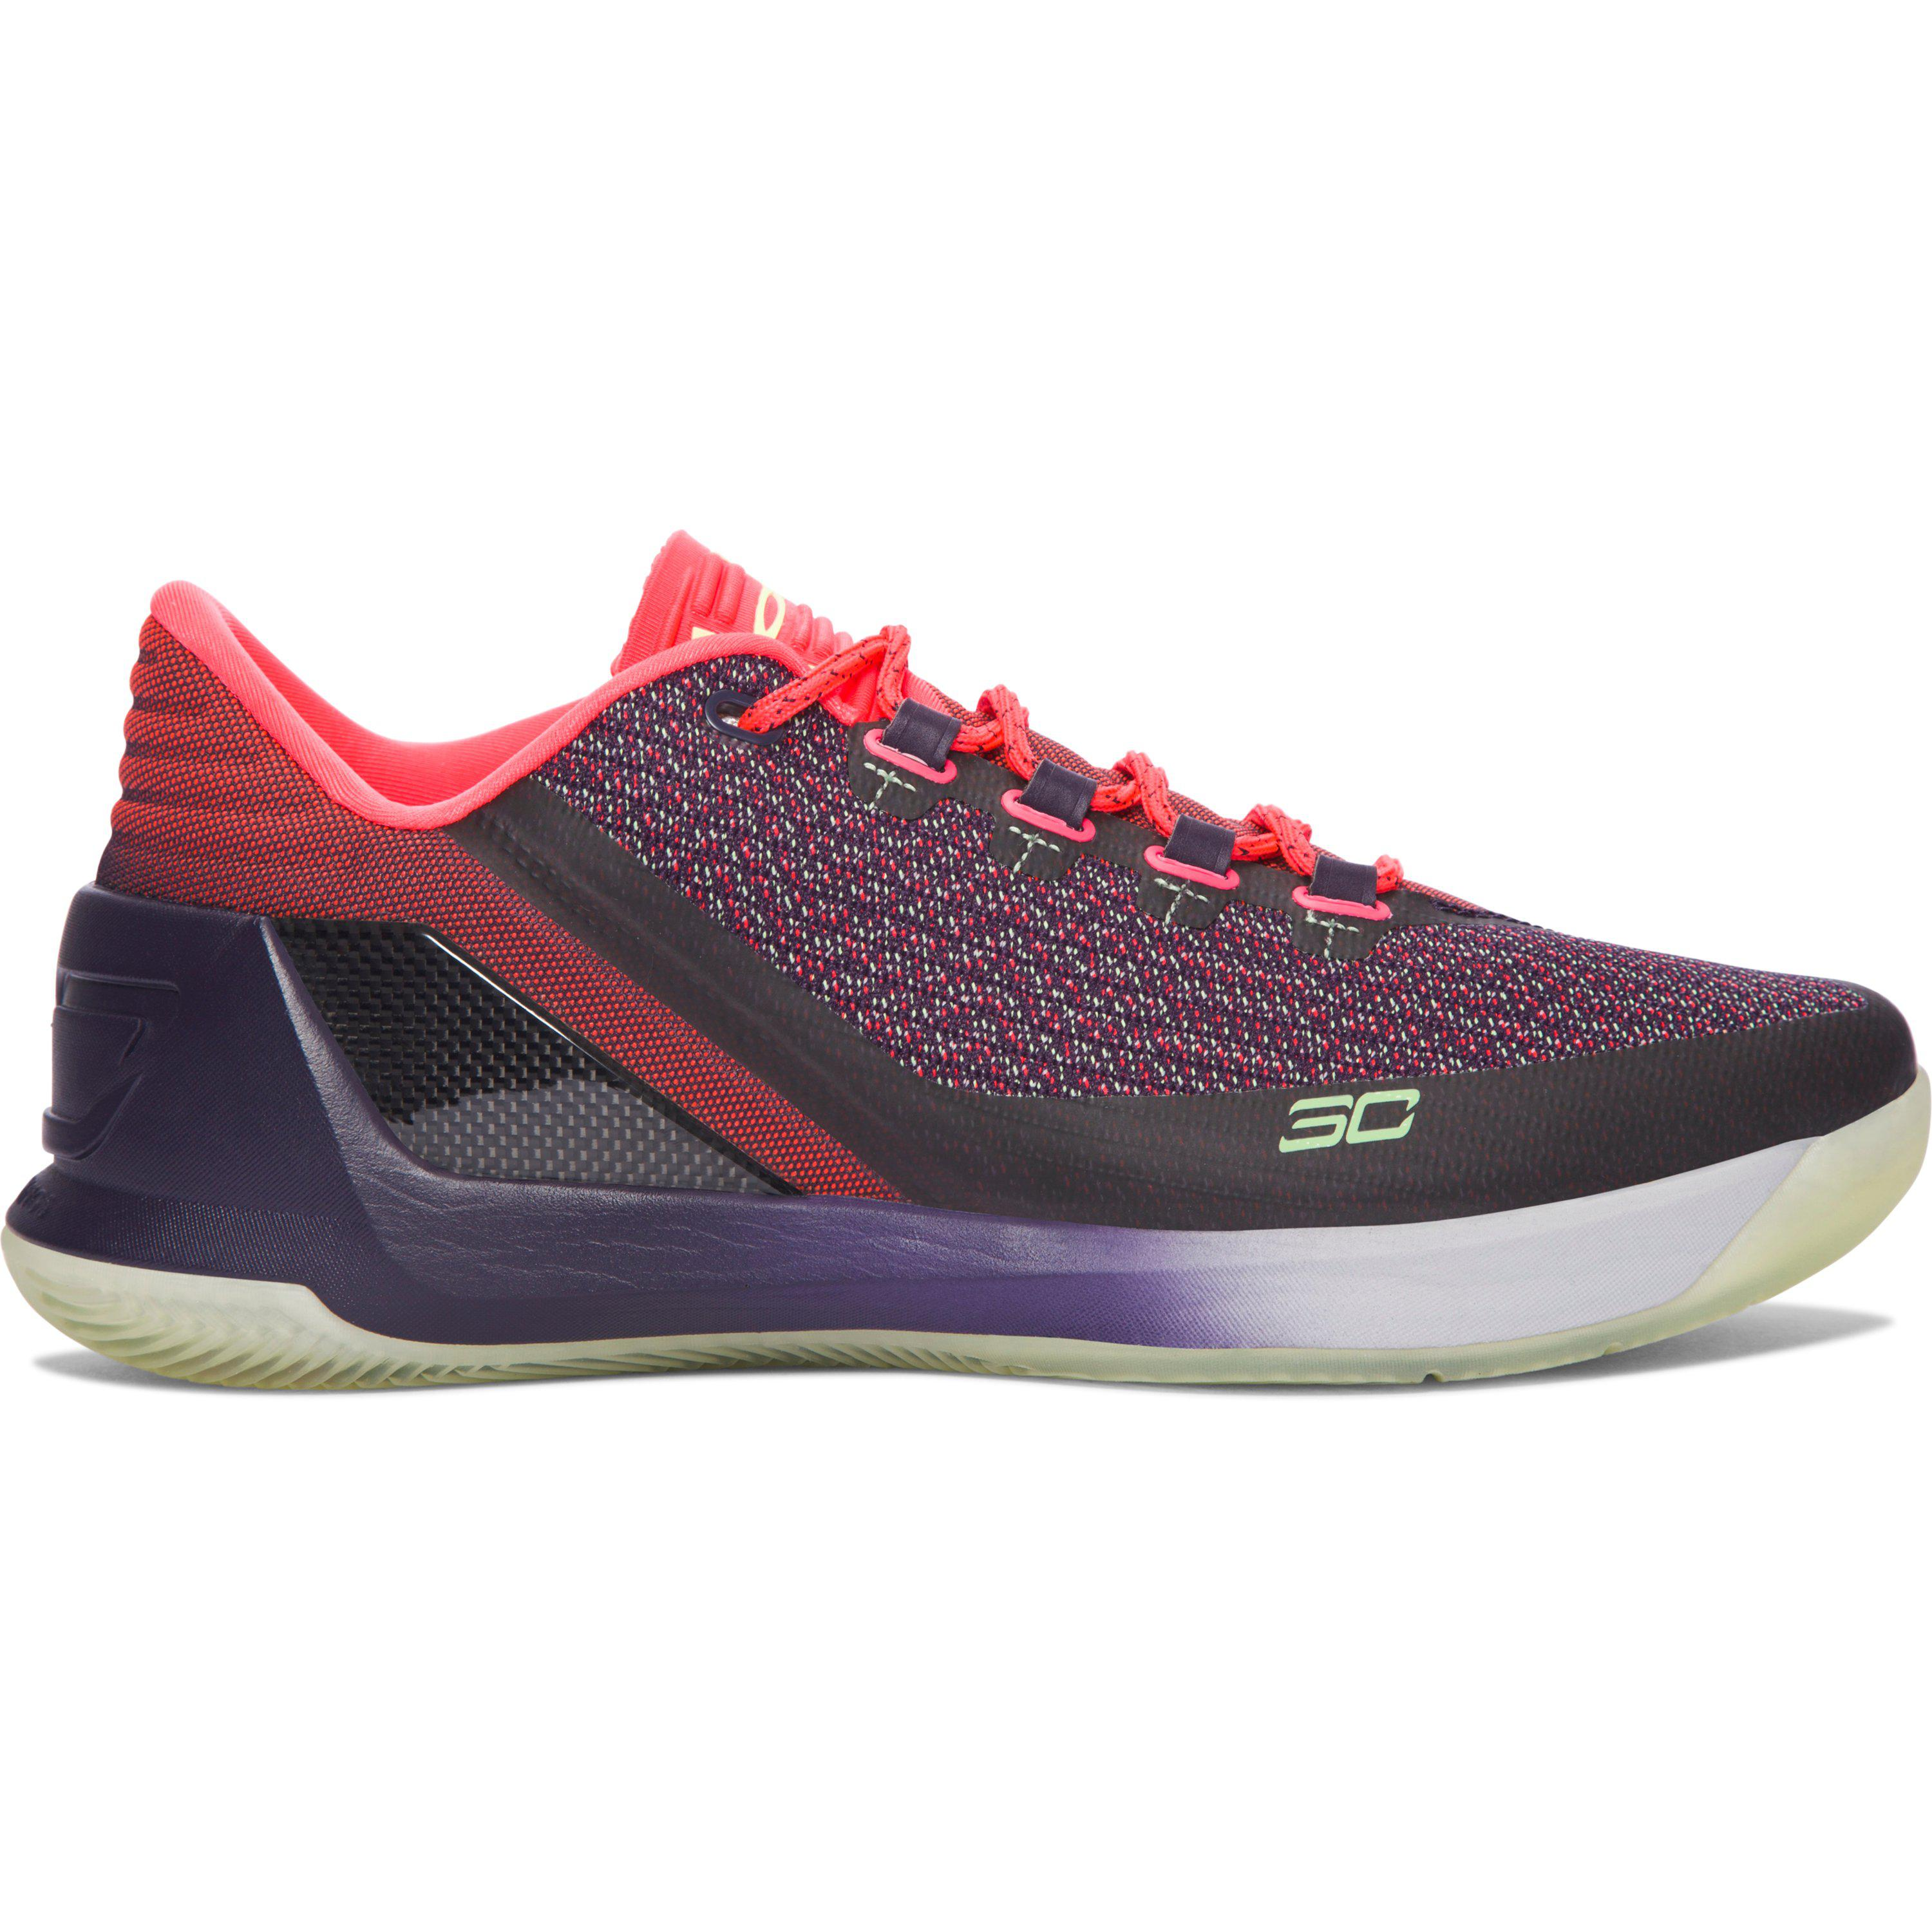 info for 2db87 33d57 best price purple orange mens under armour curry 3 shoes ...